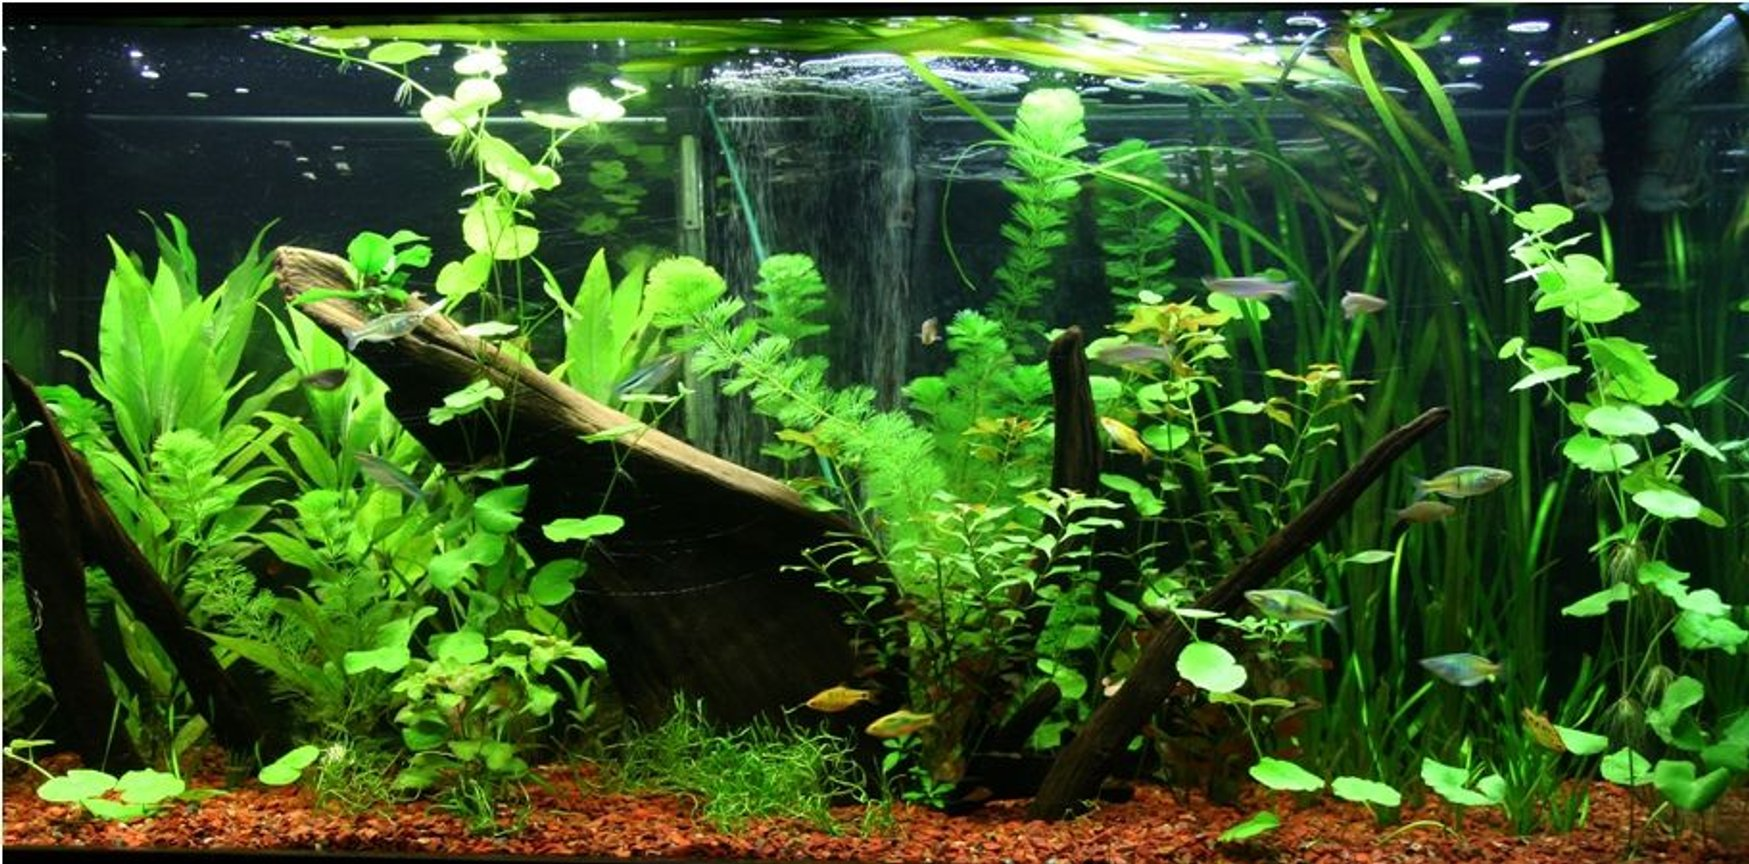 95 gallons planted tank (mostly live plants and fish) - 1 month old Asian/rainbow fish tank. Plants are growing nicely